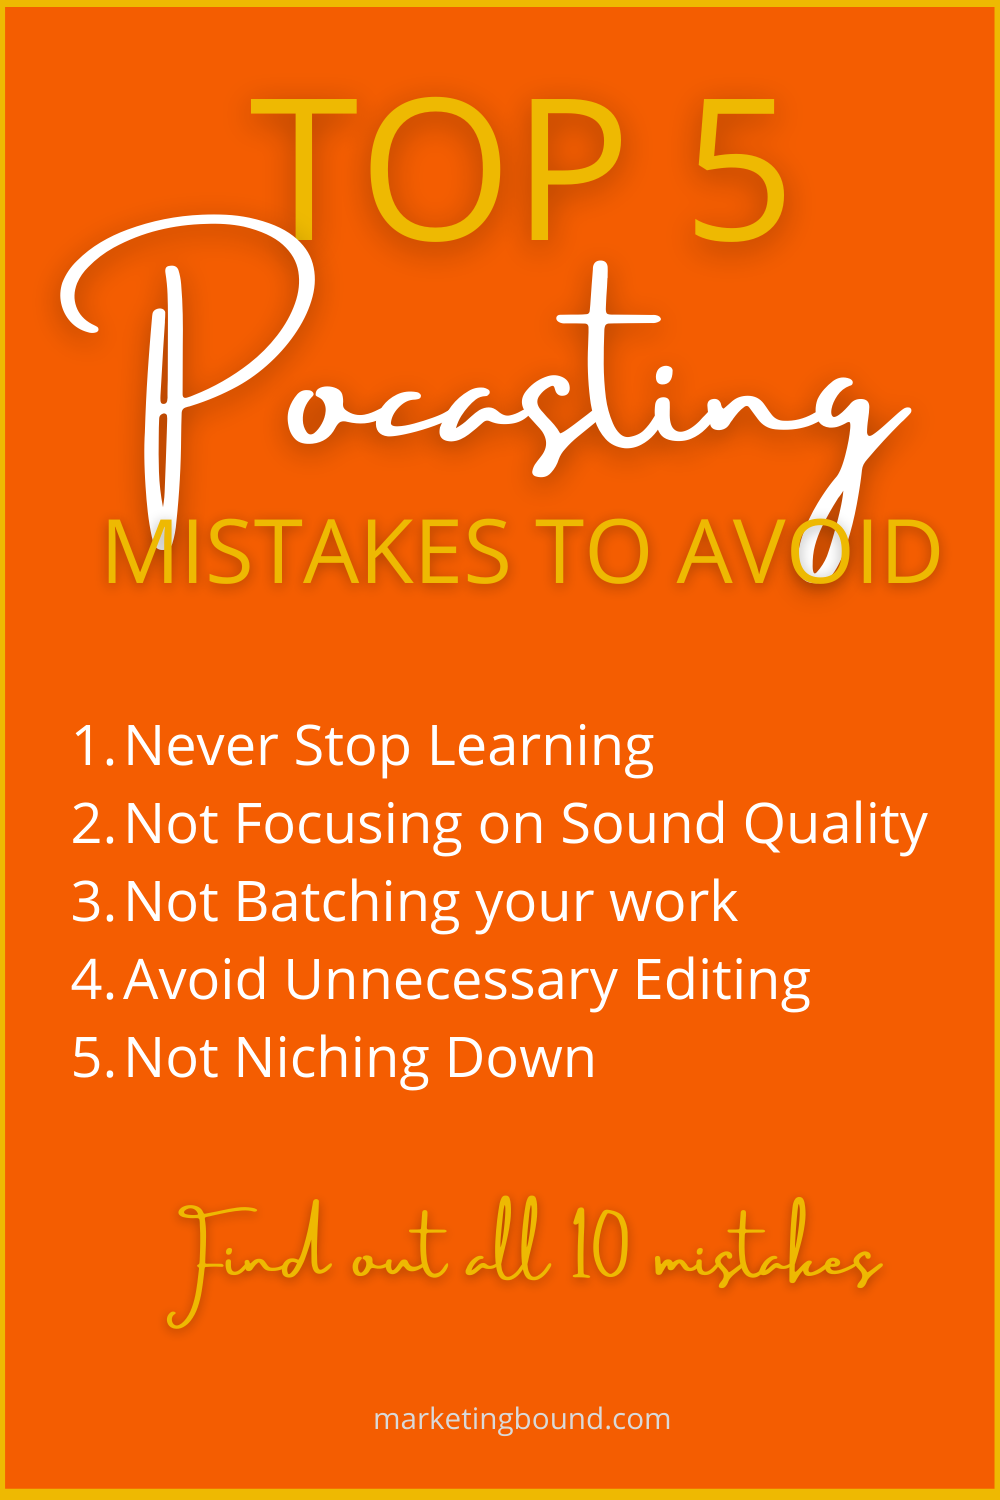 Top 5 Podcasting Mistakes to Avoid